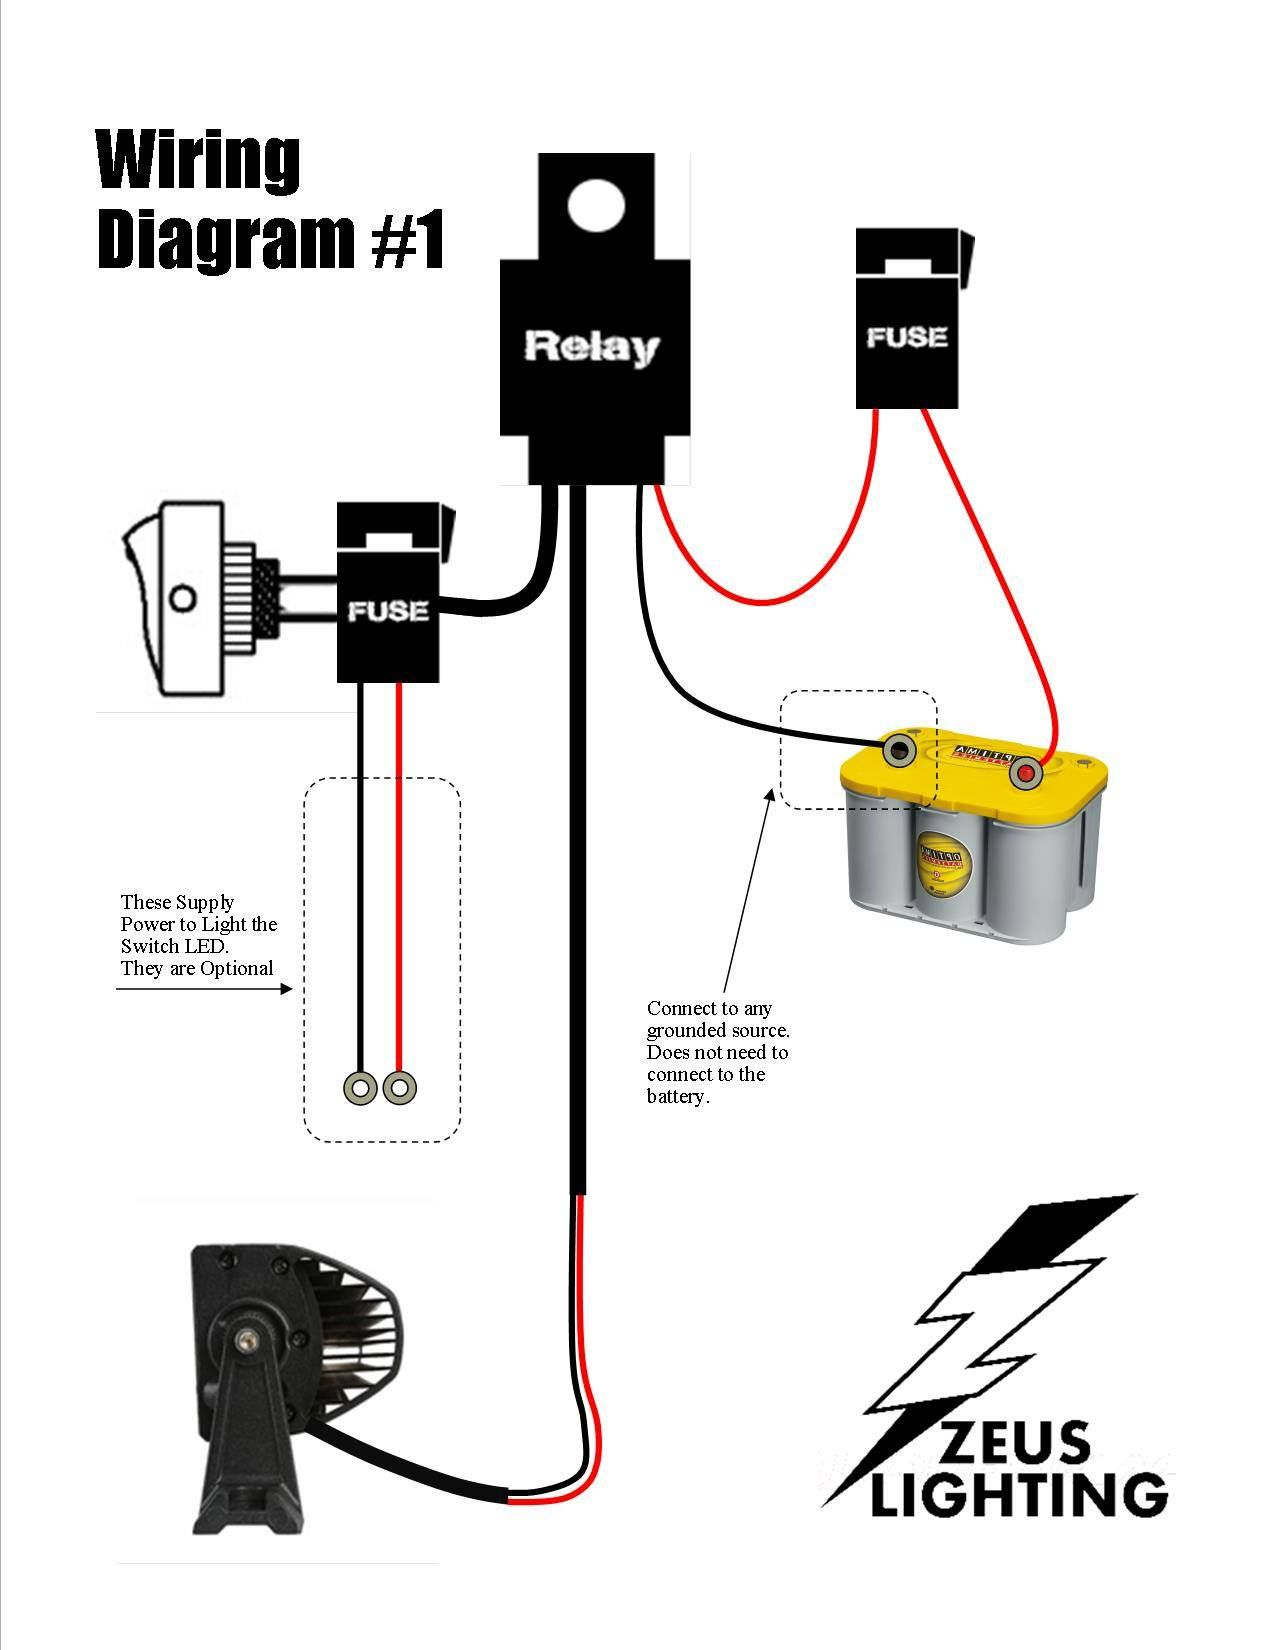 Pin By Patrick Makowski On Tractor Pinterest Jeep Trucks And Cars Dual Battery Wiring Diagram Zj Wrangler Truck Mods Car